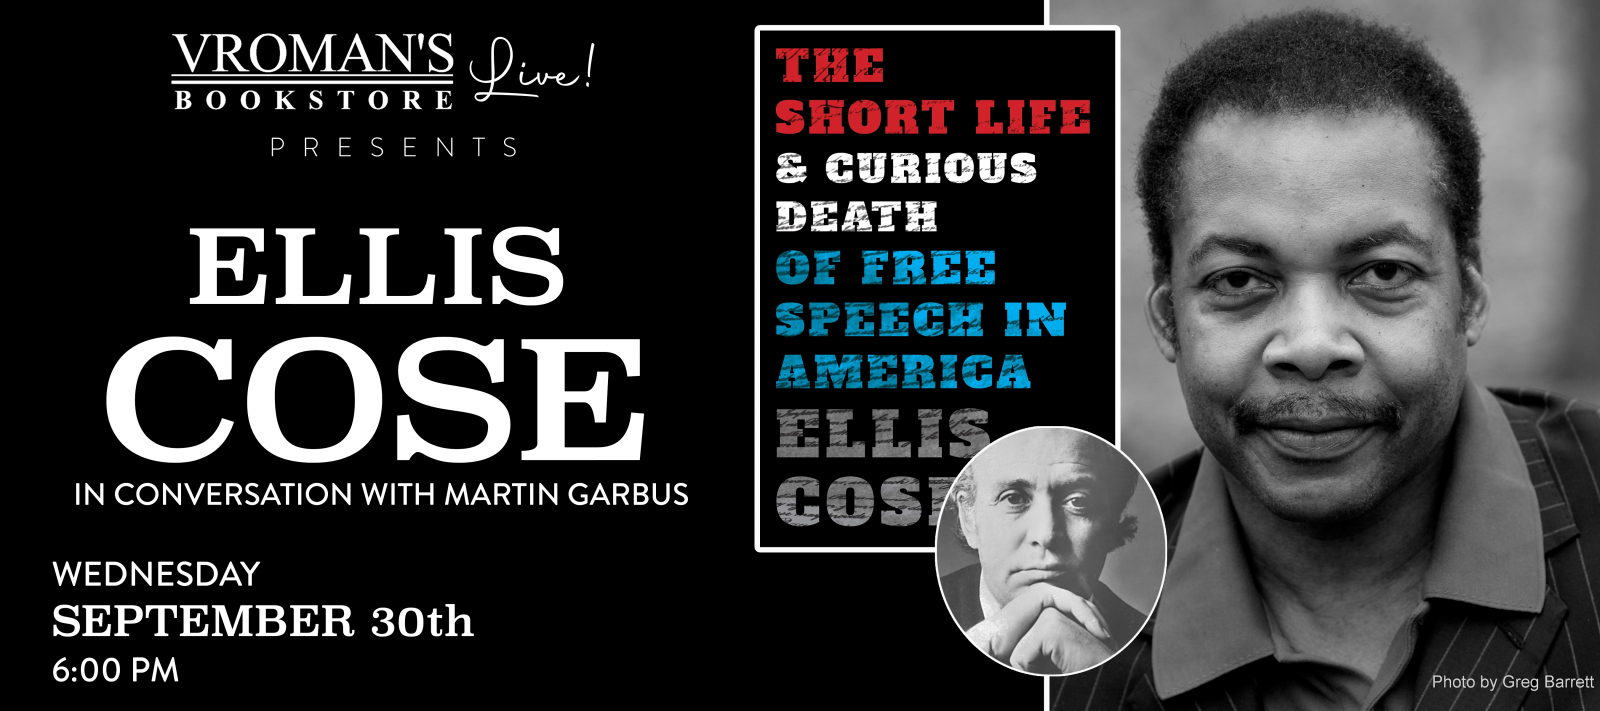 Vroman's Live presents Ellis Cose, in conversation with Martin Garbus, on Wednesday September 30 at 6pm